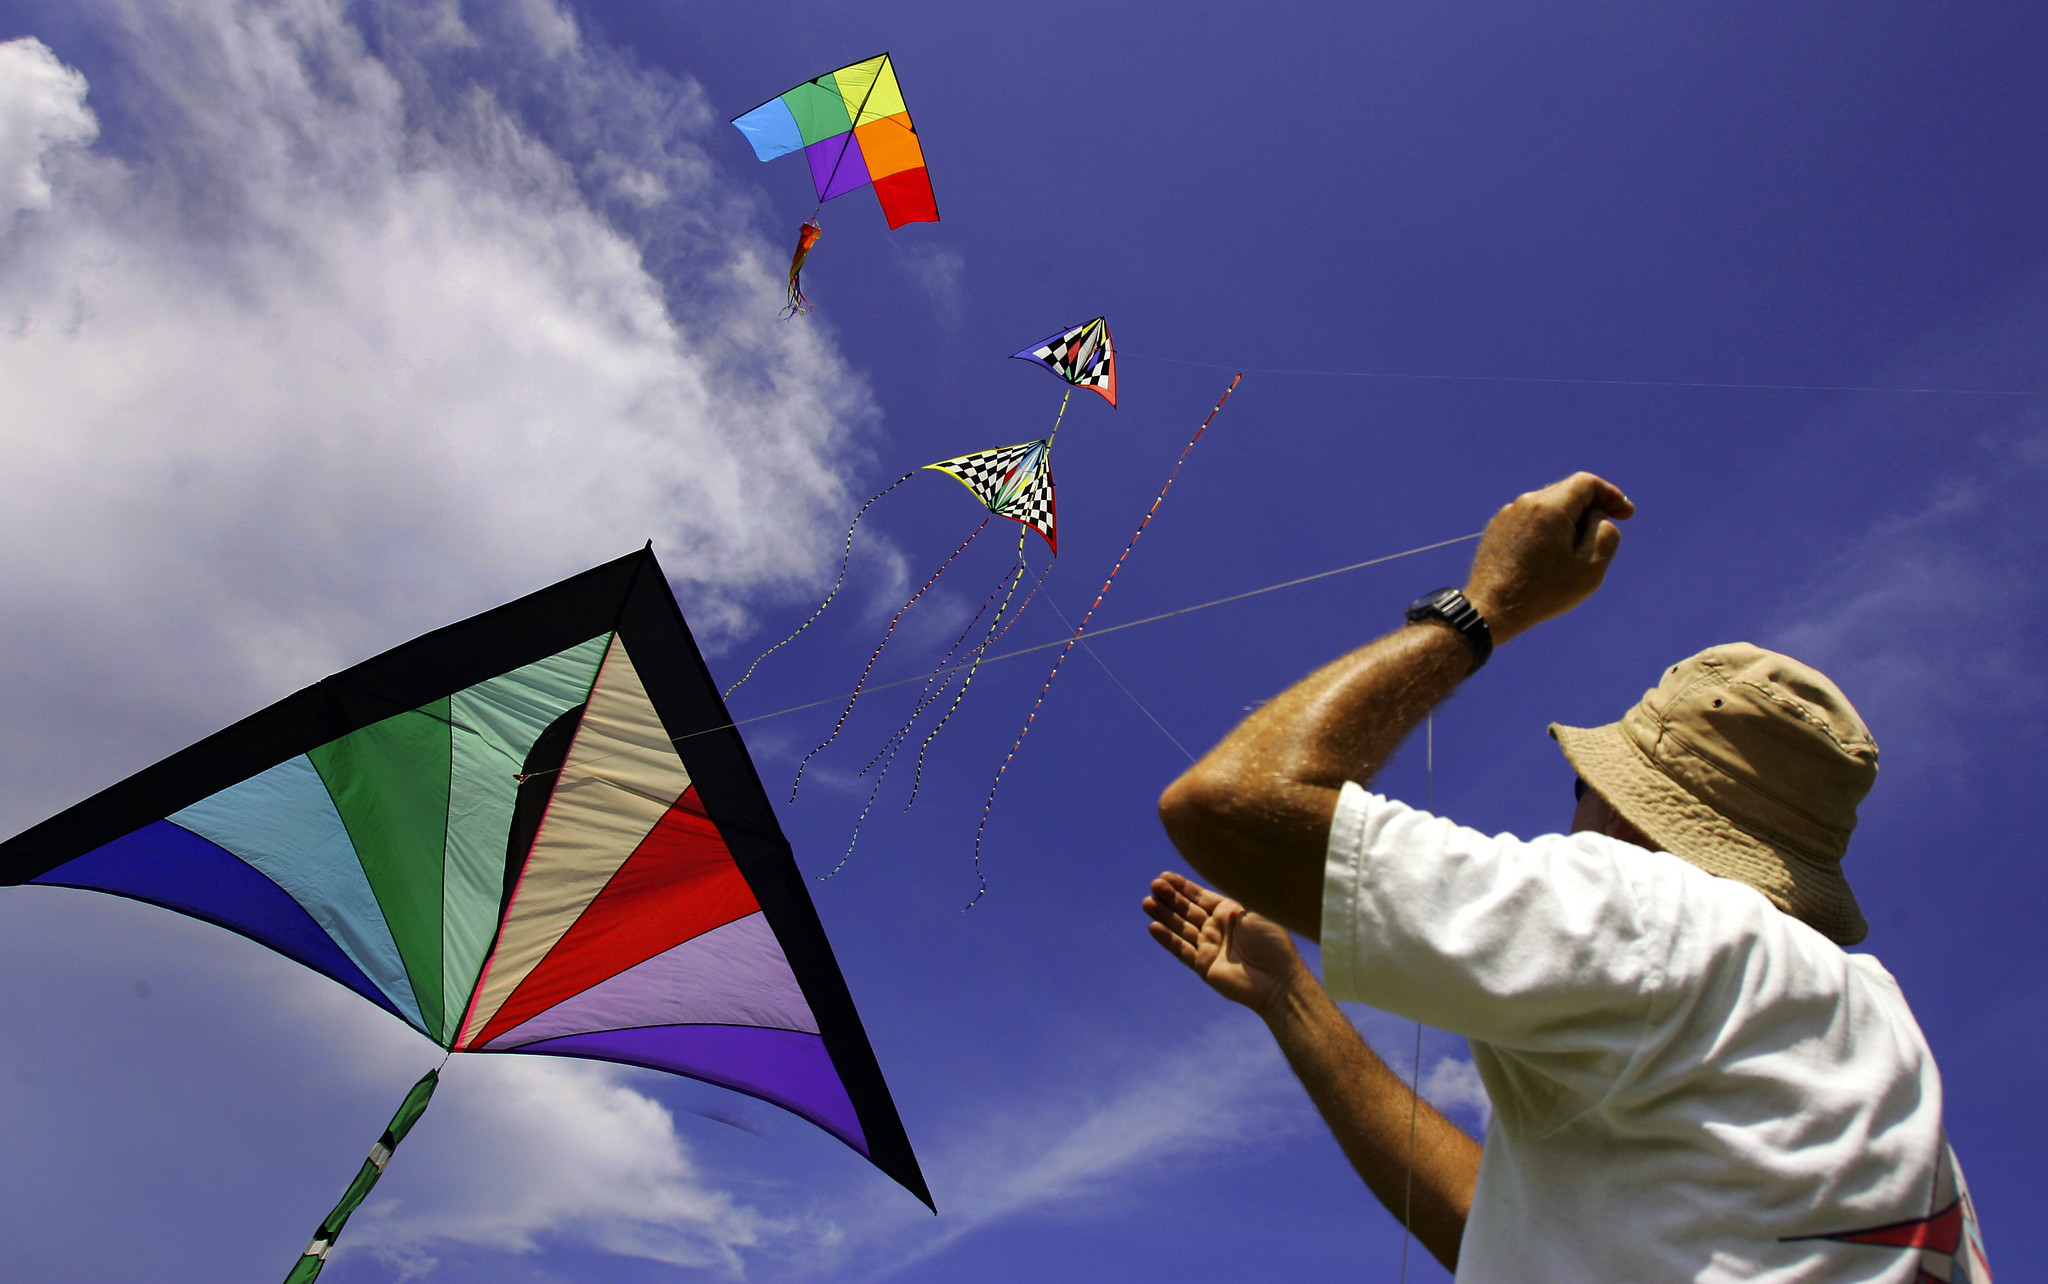 Things every South Floridian should do once - Fly a kite at Haulover Park